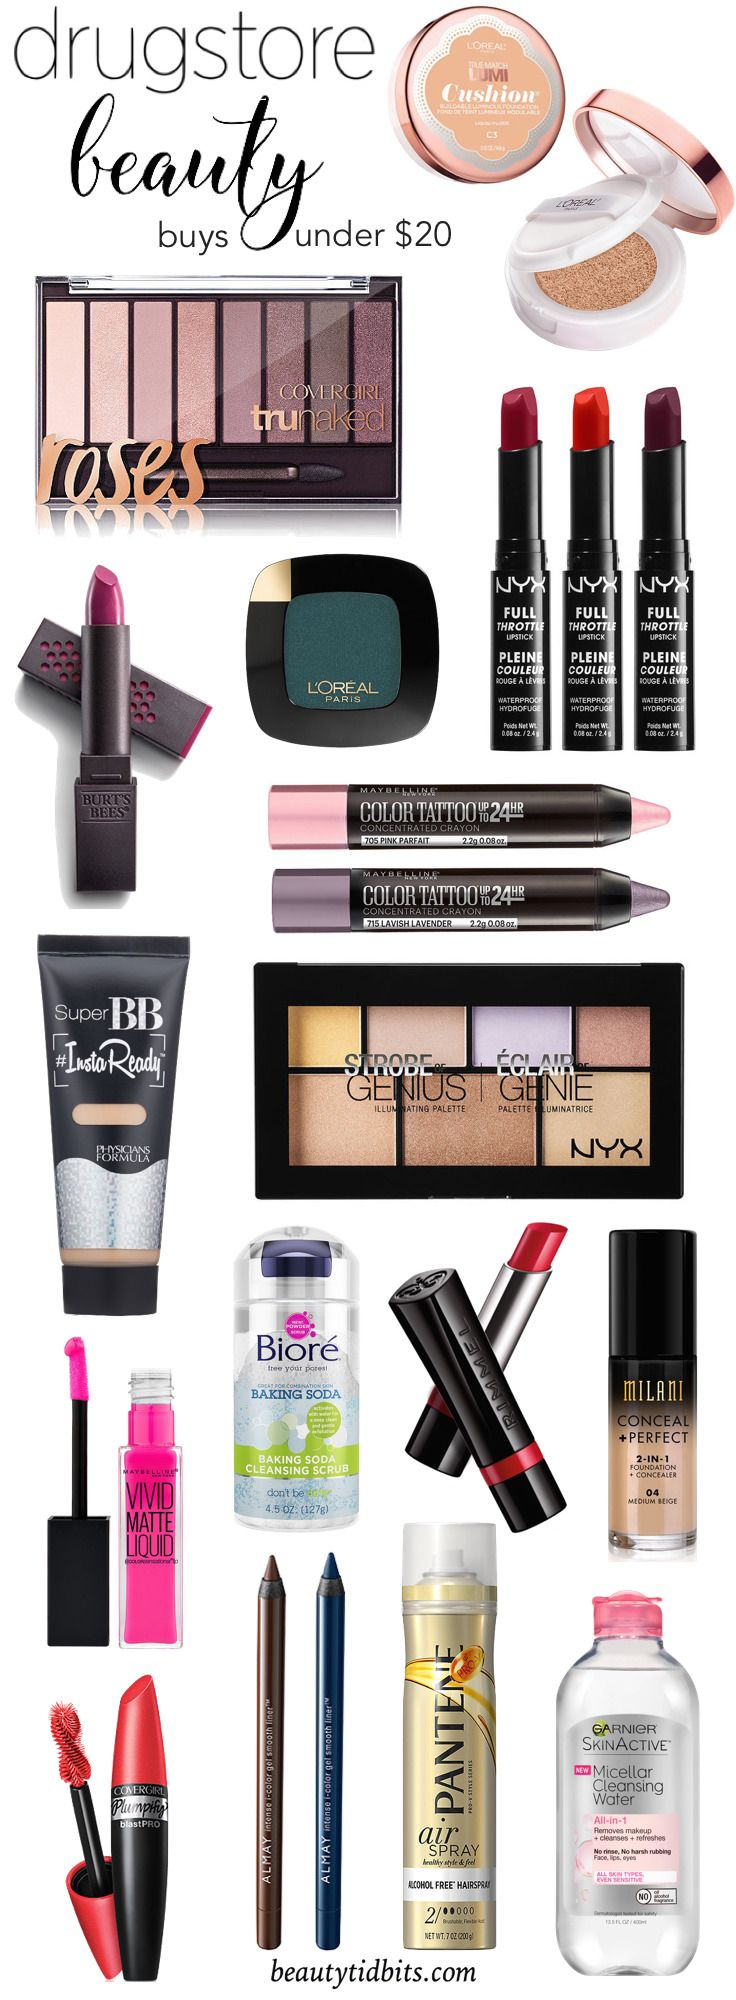 Drugstore Makeup Dupes: Cheap & Chic! 16 New Drugstore Beauty Products For 2016